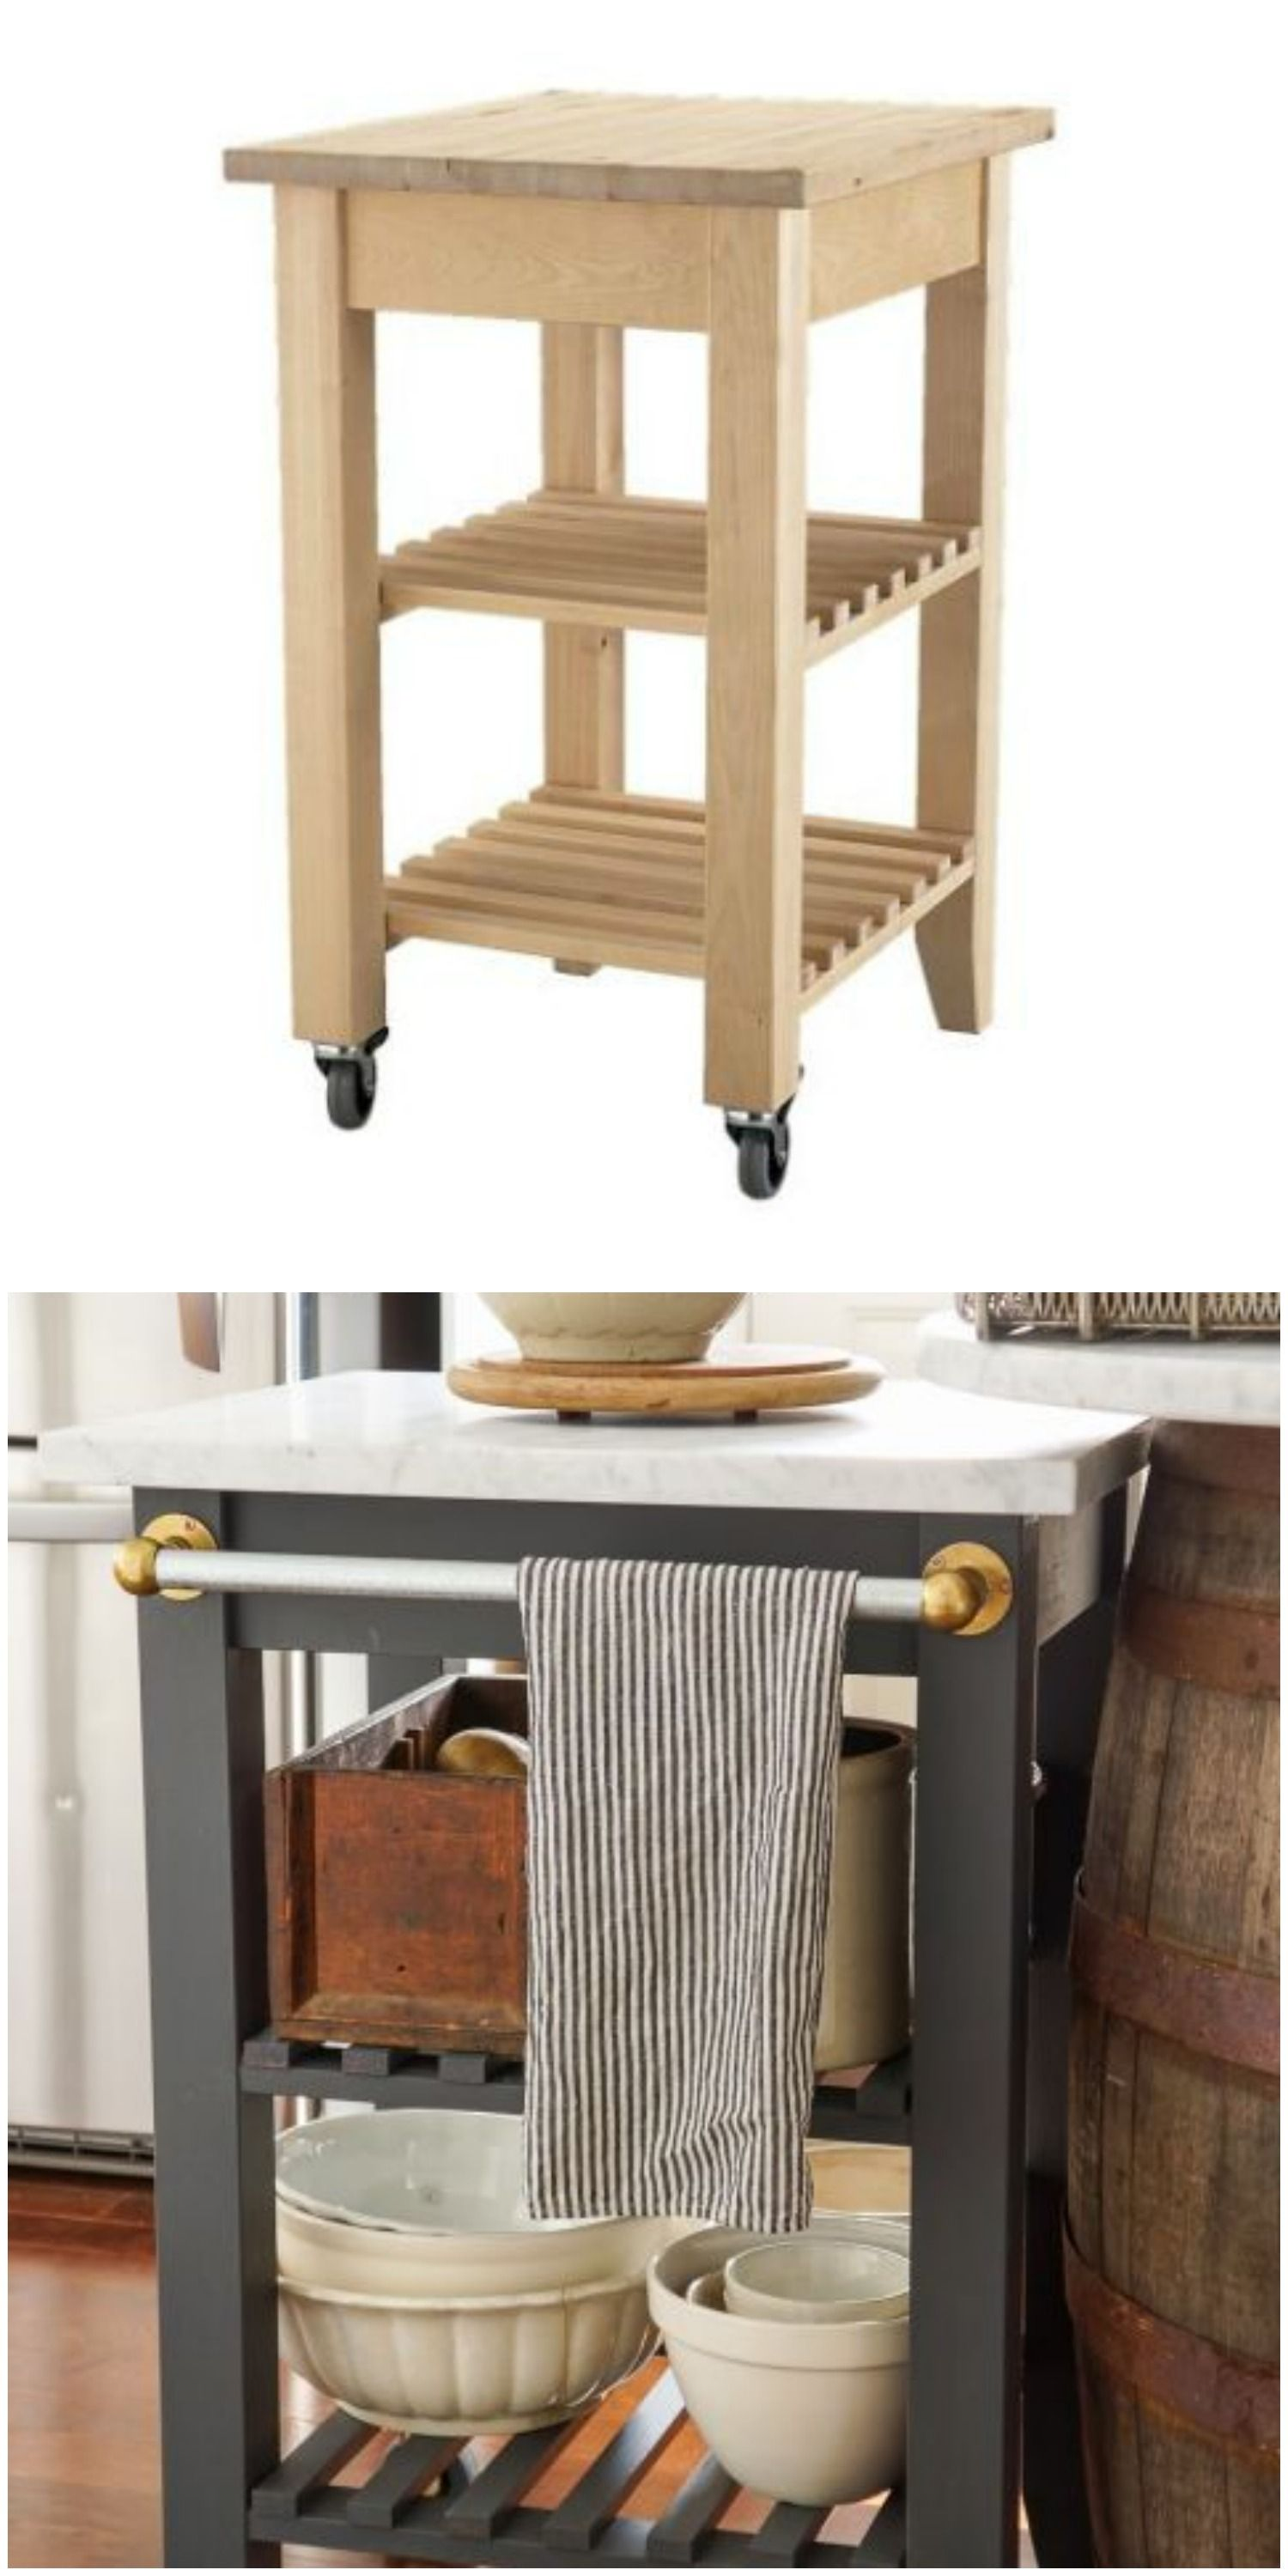 ikea portable kitchen island. Contemporary Portable The Bekvam Kitchen Cart Dazzles As A Portable Island In This IKEA  Hack And Ikea Portable Kitchen Island N